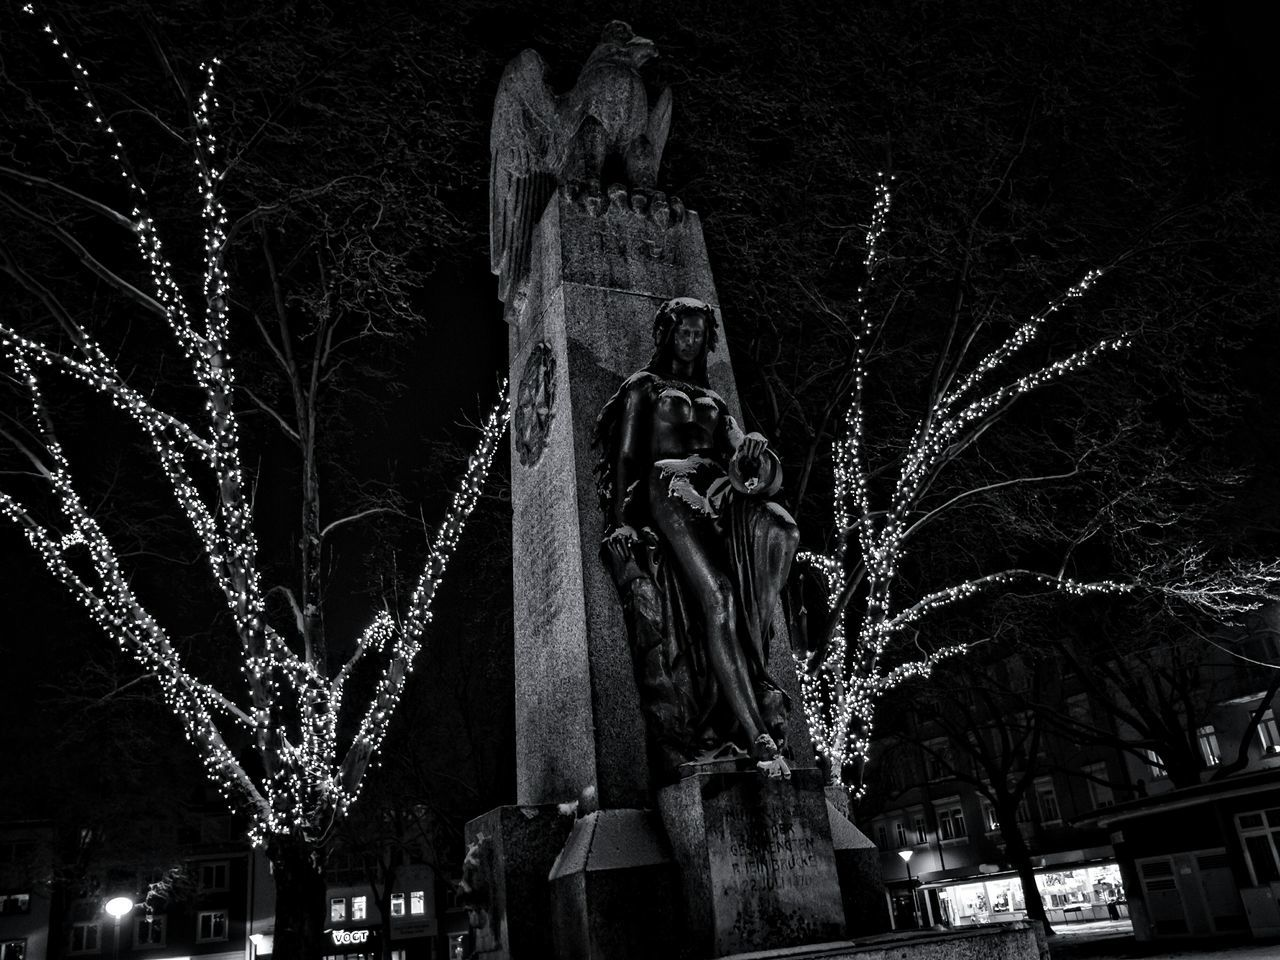 Low Angle View Of Statue Amidst Illuminated Trees At Night